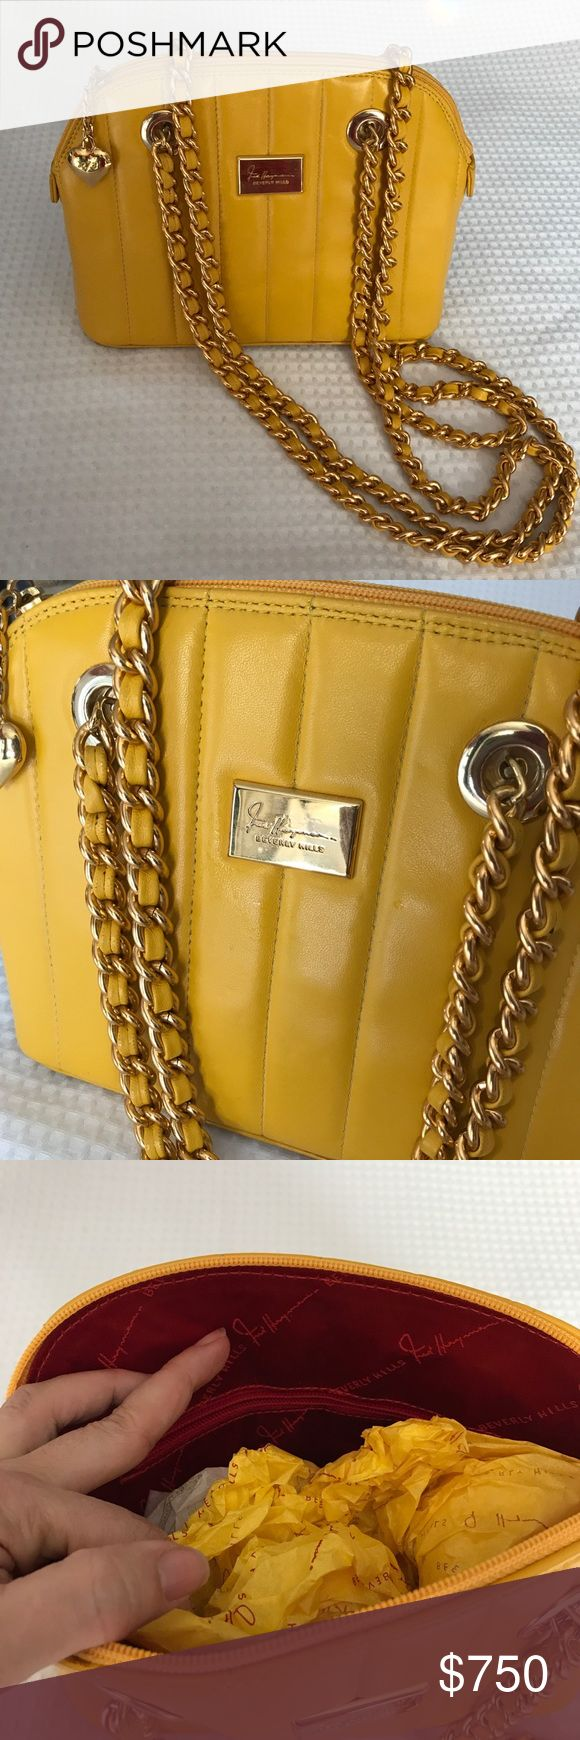 "Vintage Fred Hayman Bag This is the iconic Fred Hayman Yellow from the flagship Giorgio of Beverly Hills store on Rodeo Drive. Kept in pristine condition since the 1980's. This is a ""Pretty Woman"" must have bag. Rare find! One small blemish is noted in the photos but does not take away from the bag's beauty. Buttery leather with heavy straps in the vein of a Chanel bag. Fred Hayman Bags Shoulder Bags"